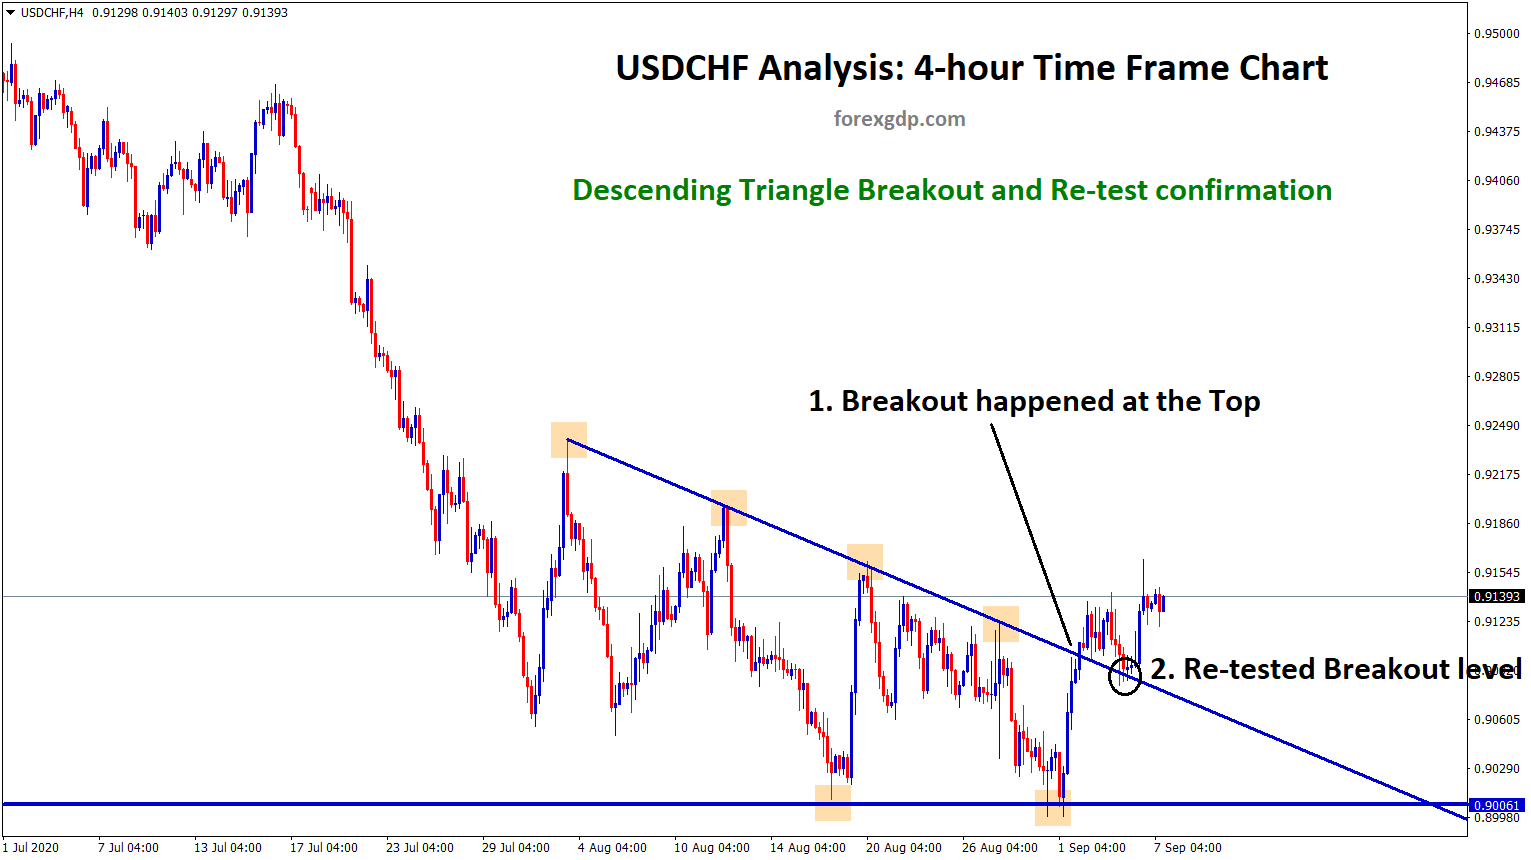 usdchf descending triangle breakout and retest confirm